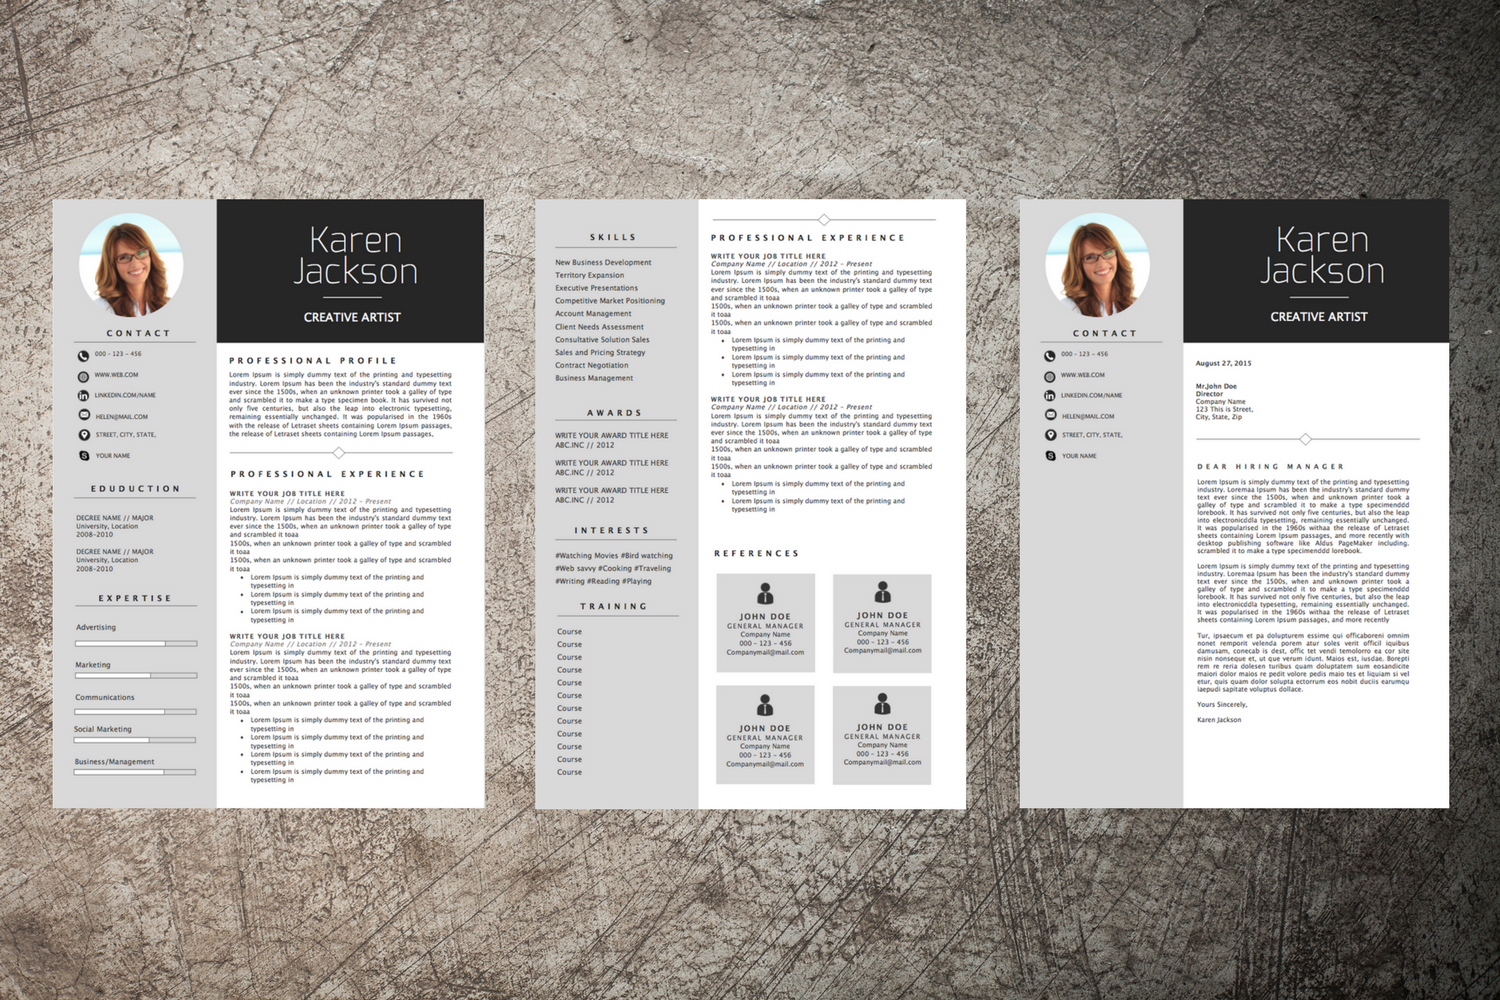 Professional CV Design 2